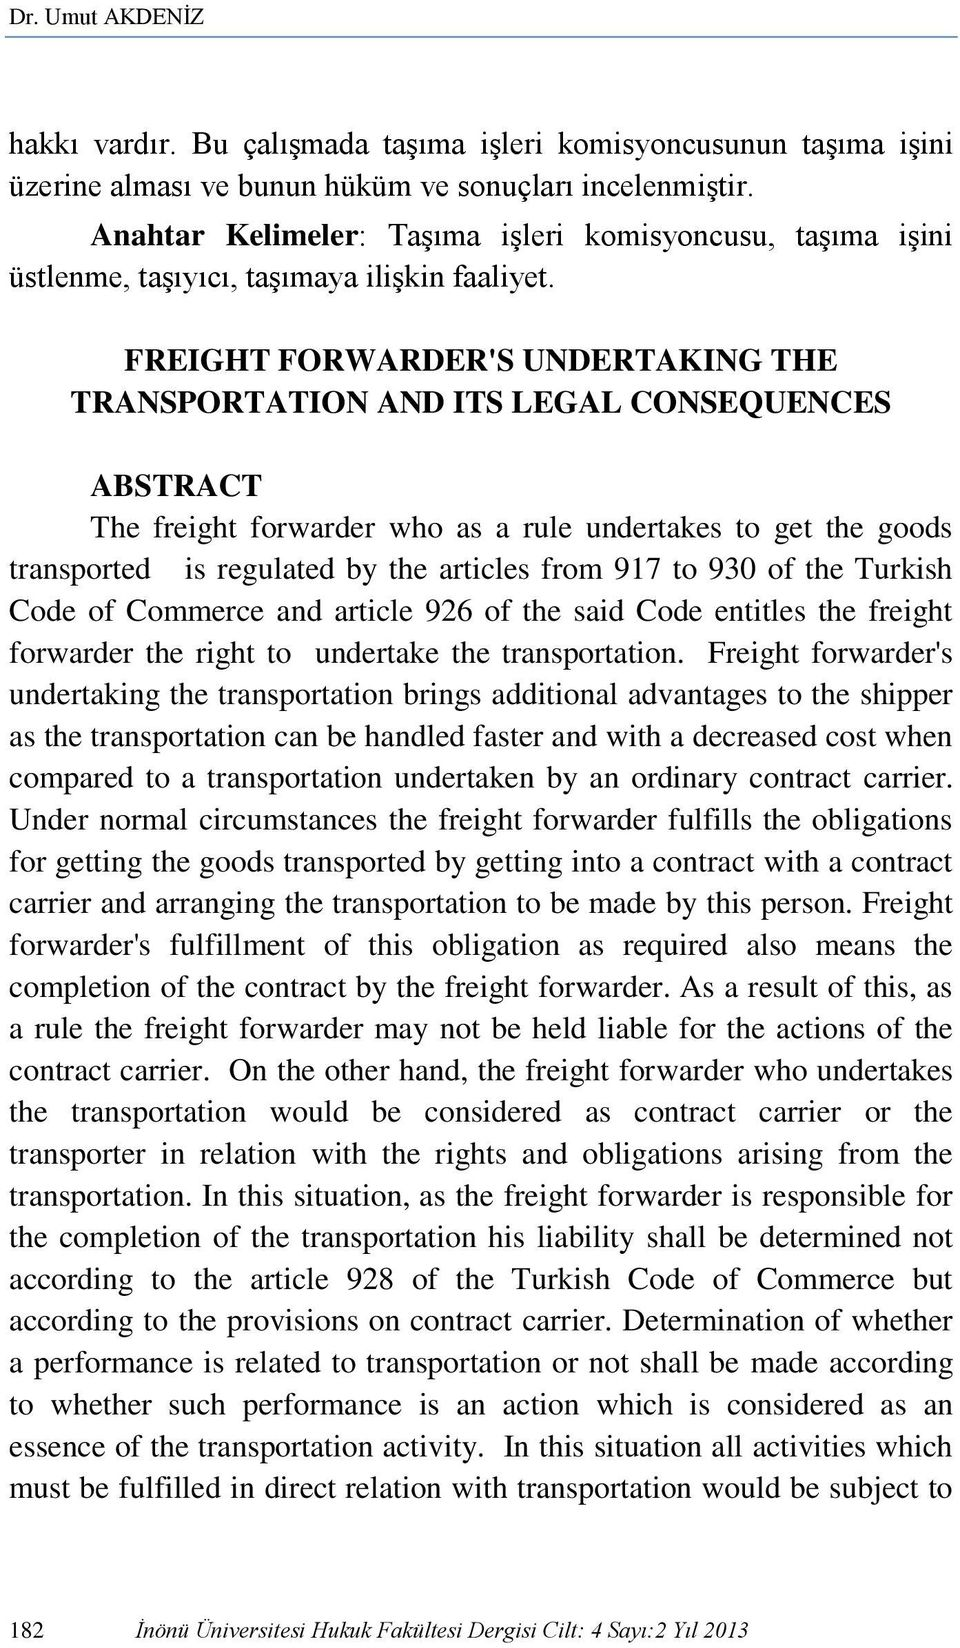 FREIGHT FORWARDER'S UNDERTAKING THE TRANSPORTATION AND ITS LEGAL CONSEQUENCES ABSTRACT The freight forwarder who as a rule undertakes to get the goods transported is regulated by the articles from